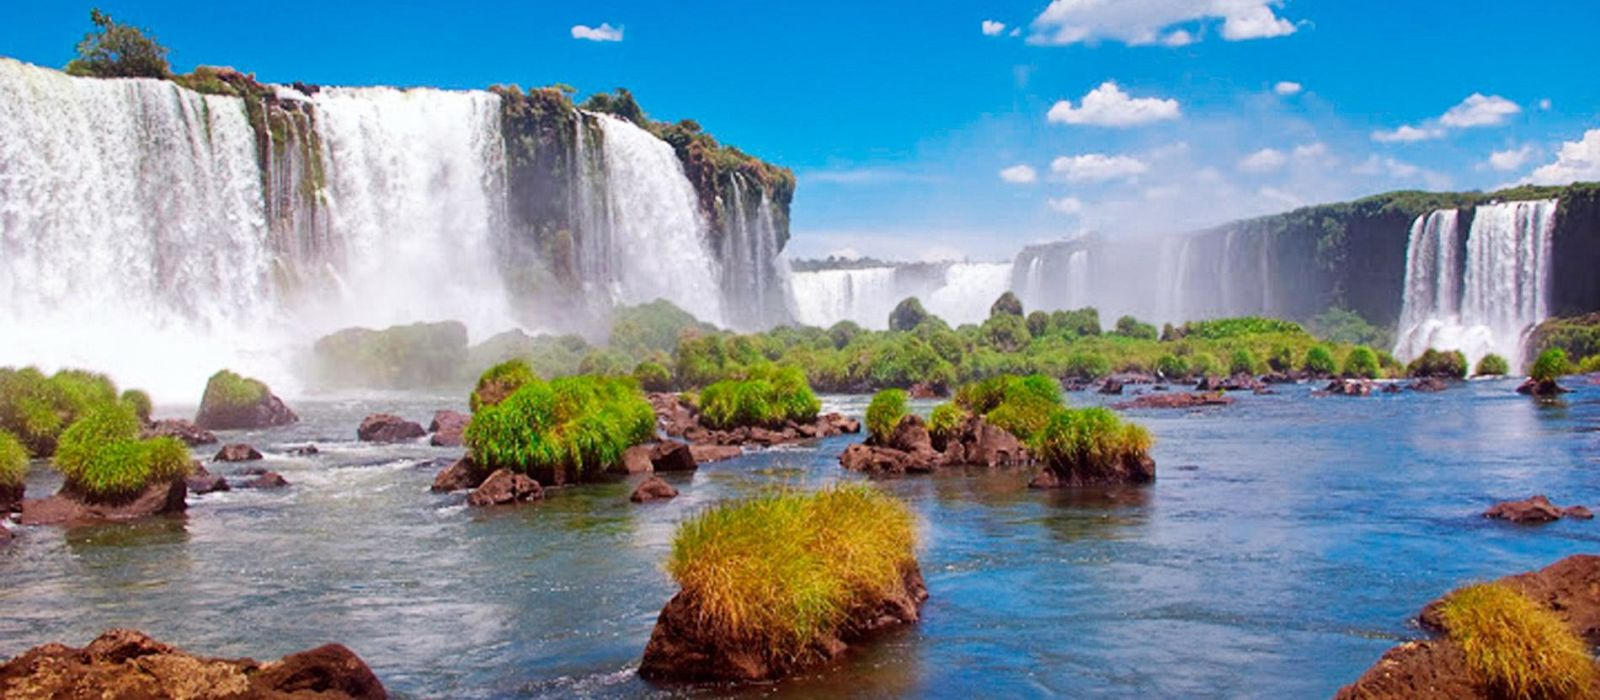 Exclusive Travel Tips For Your Destination Foz Do Iguacu